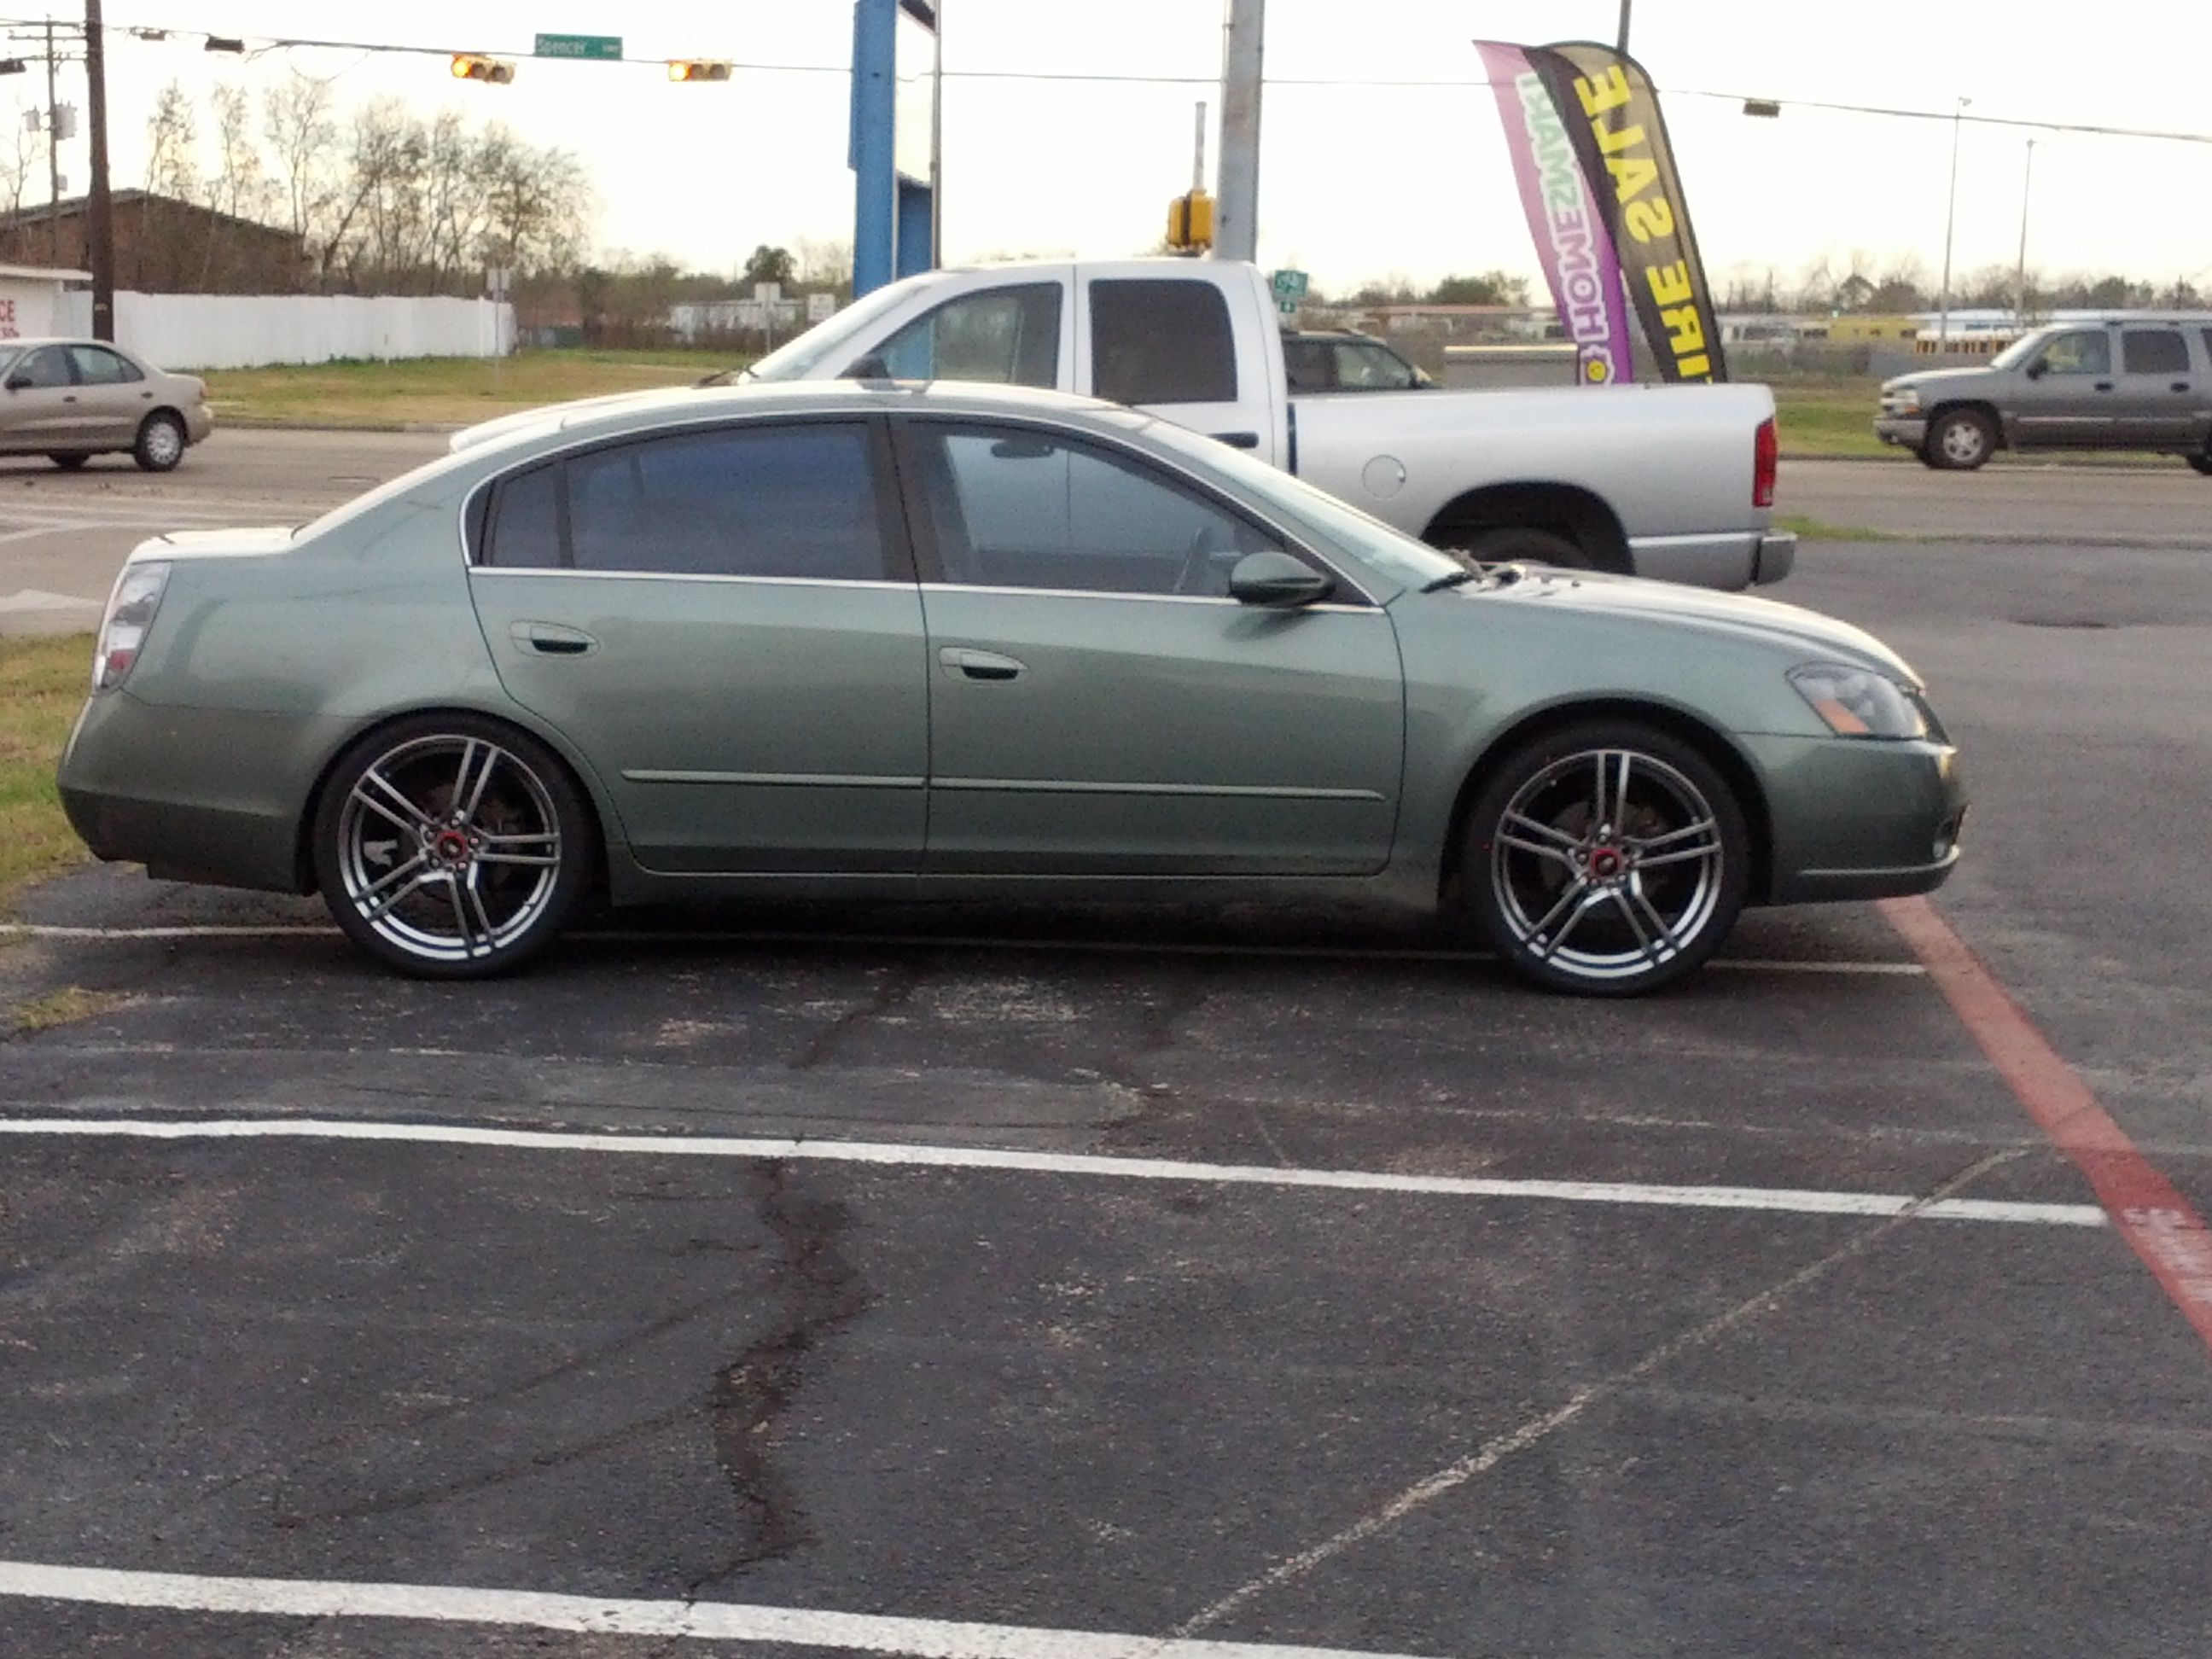 Check out Eric Baker's 2005 Nissan Altima sporting the 20